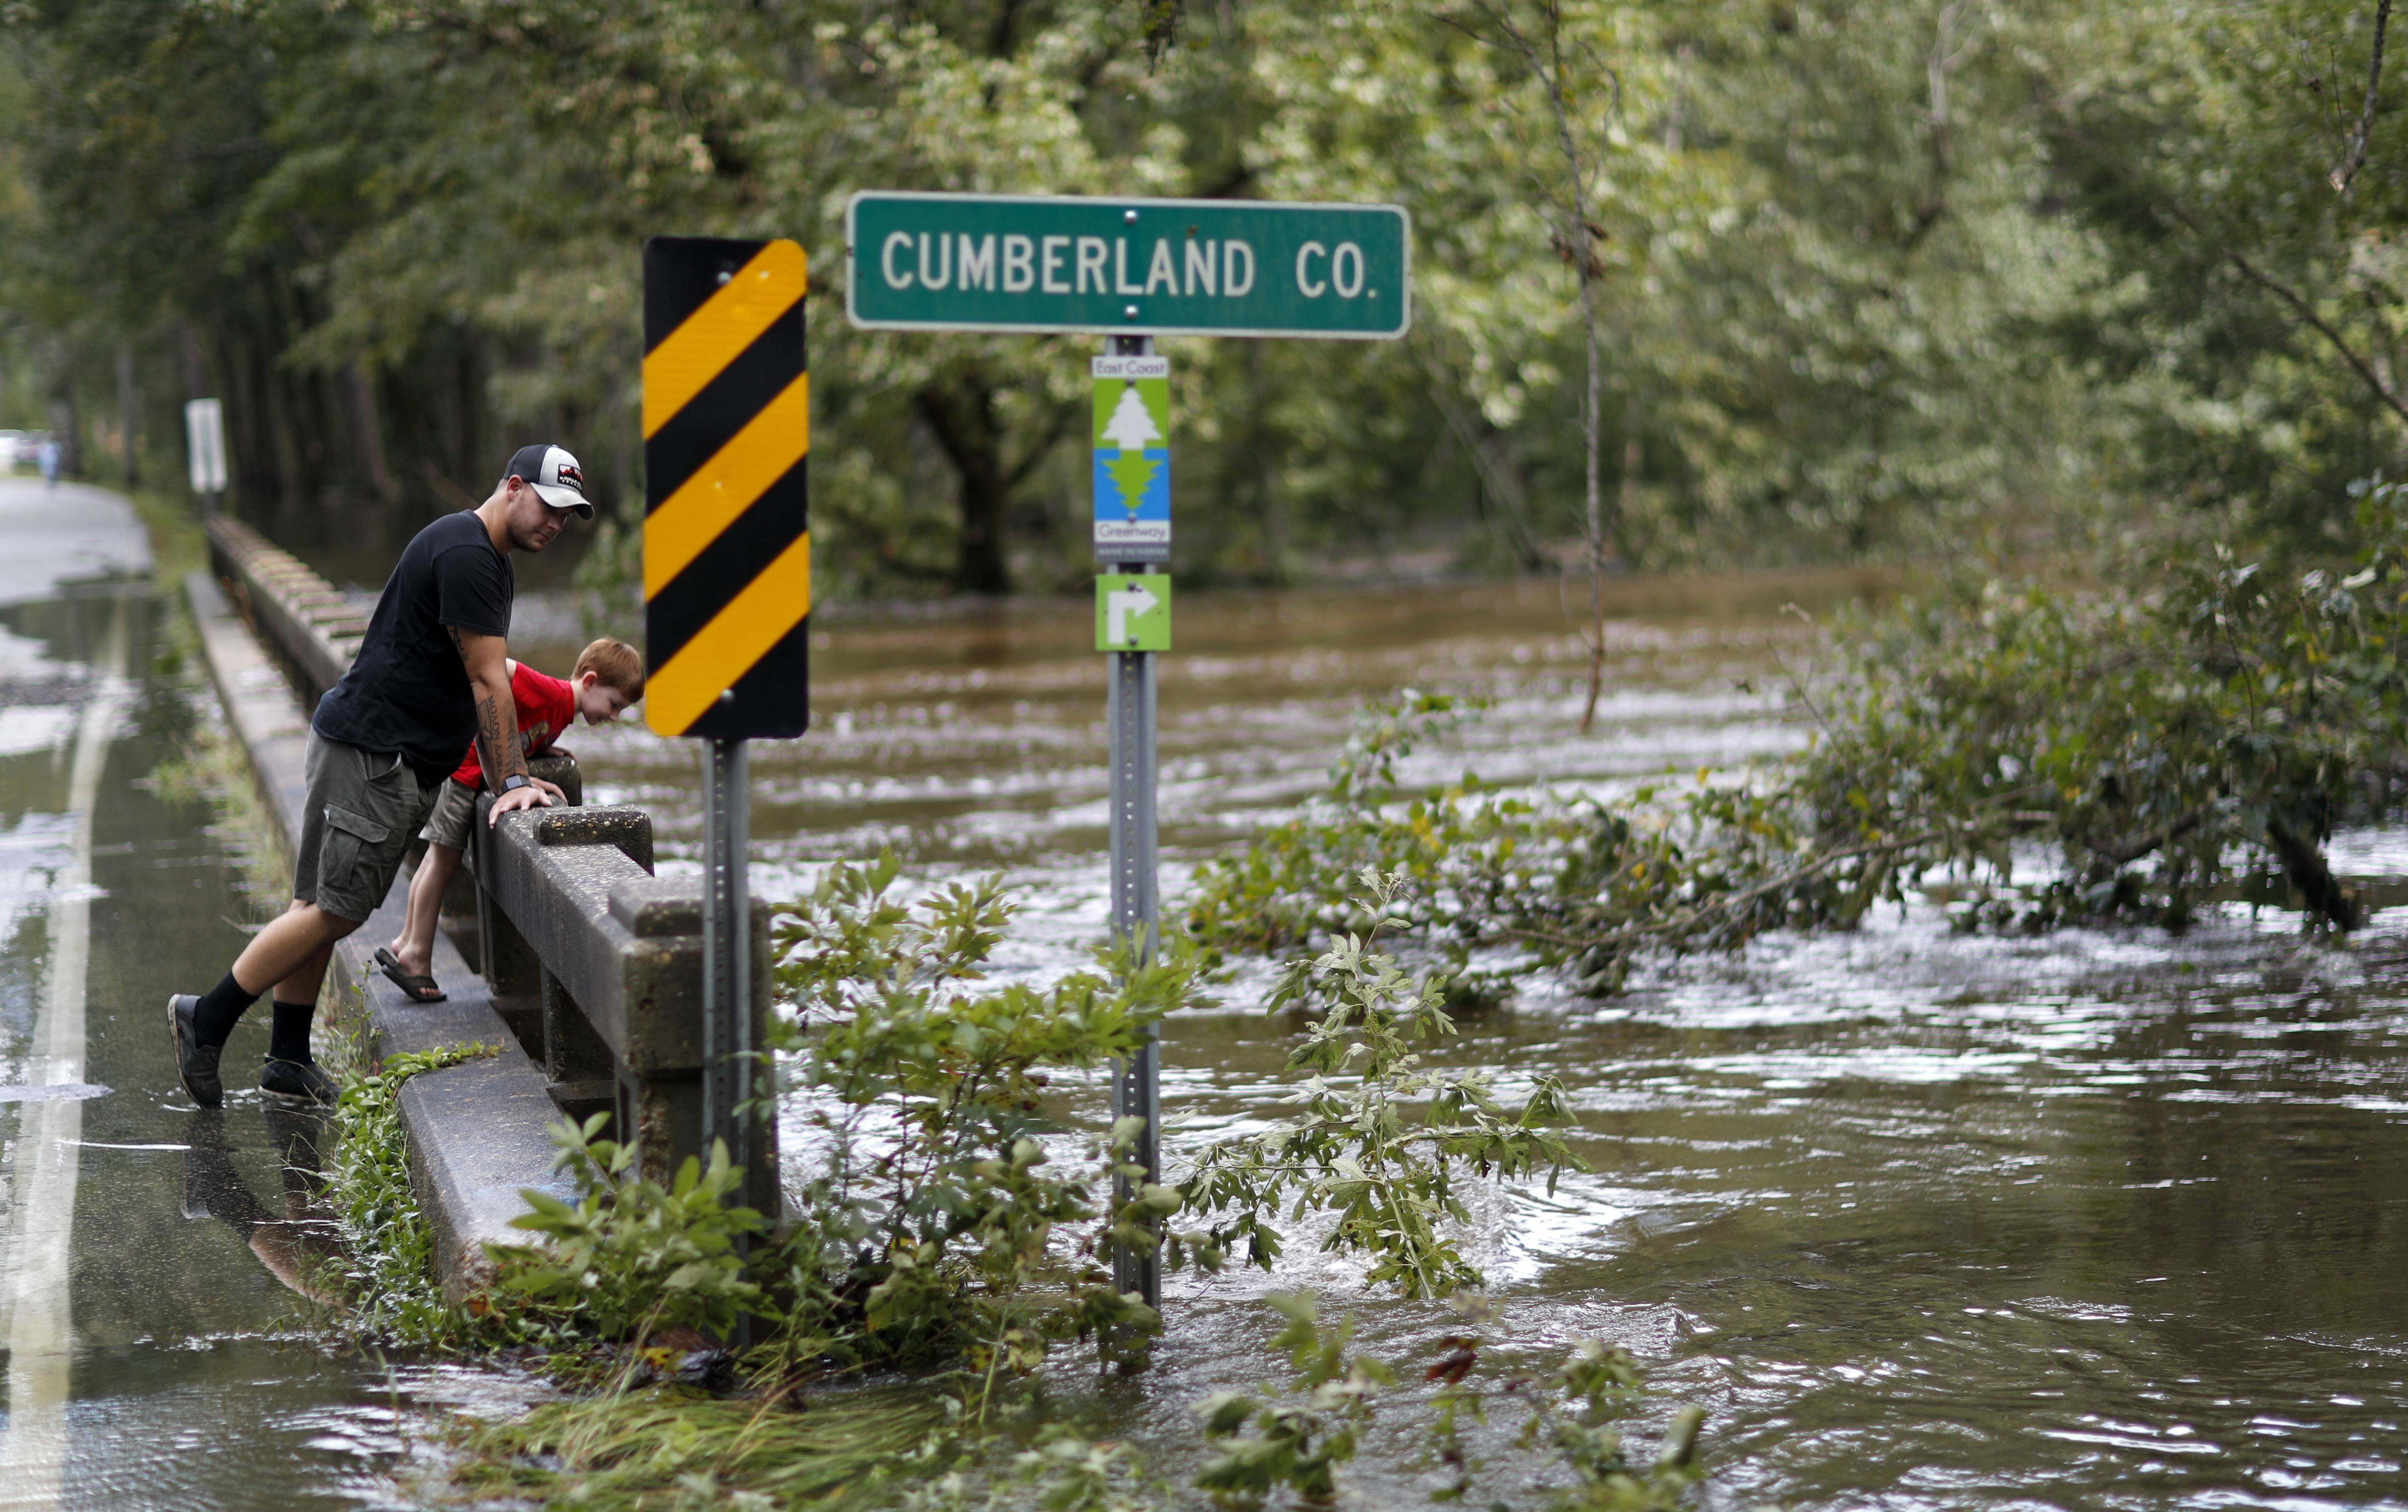 The waters of the Little River flow up against a bridge as it begins to recede making the road passable in the aftermath of Hurricane Florence in Fayetteville, N.C., Tuesday, Sept. 18, 2018. (AP Photo/David Goldman)